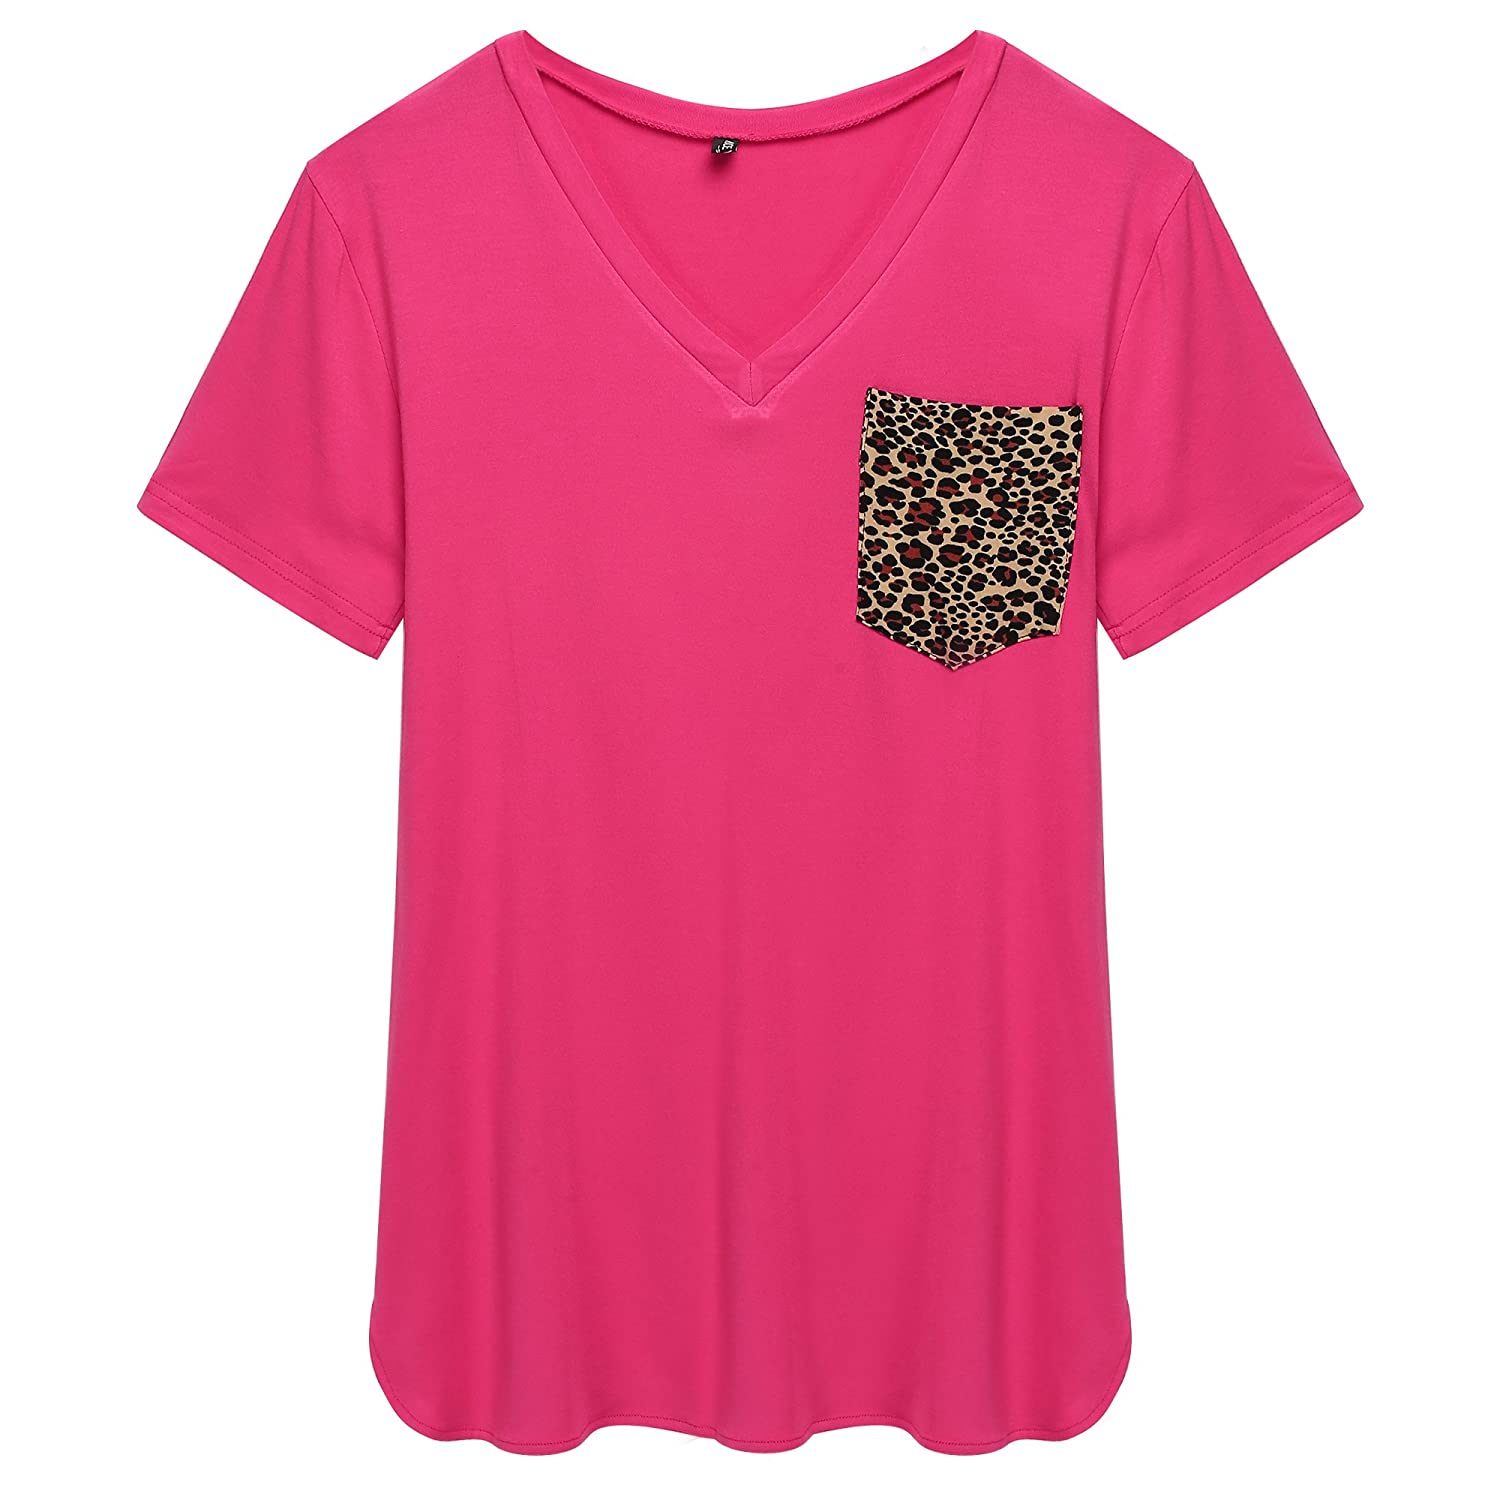 ACEVOG Women's Short Sleeve Leopard Printing V-Neck Tee Tank Top Shirt